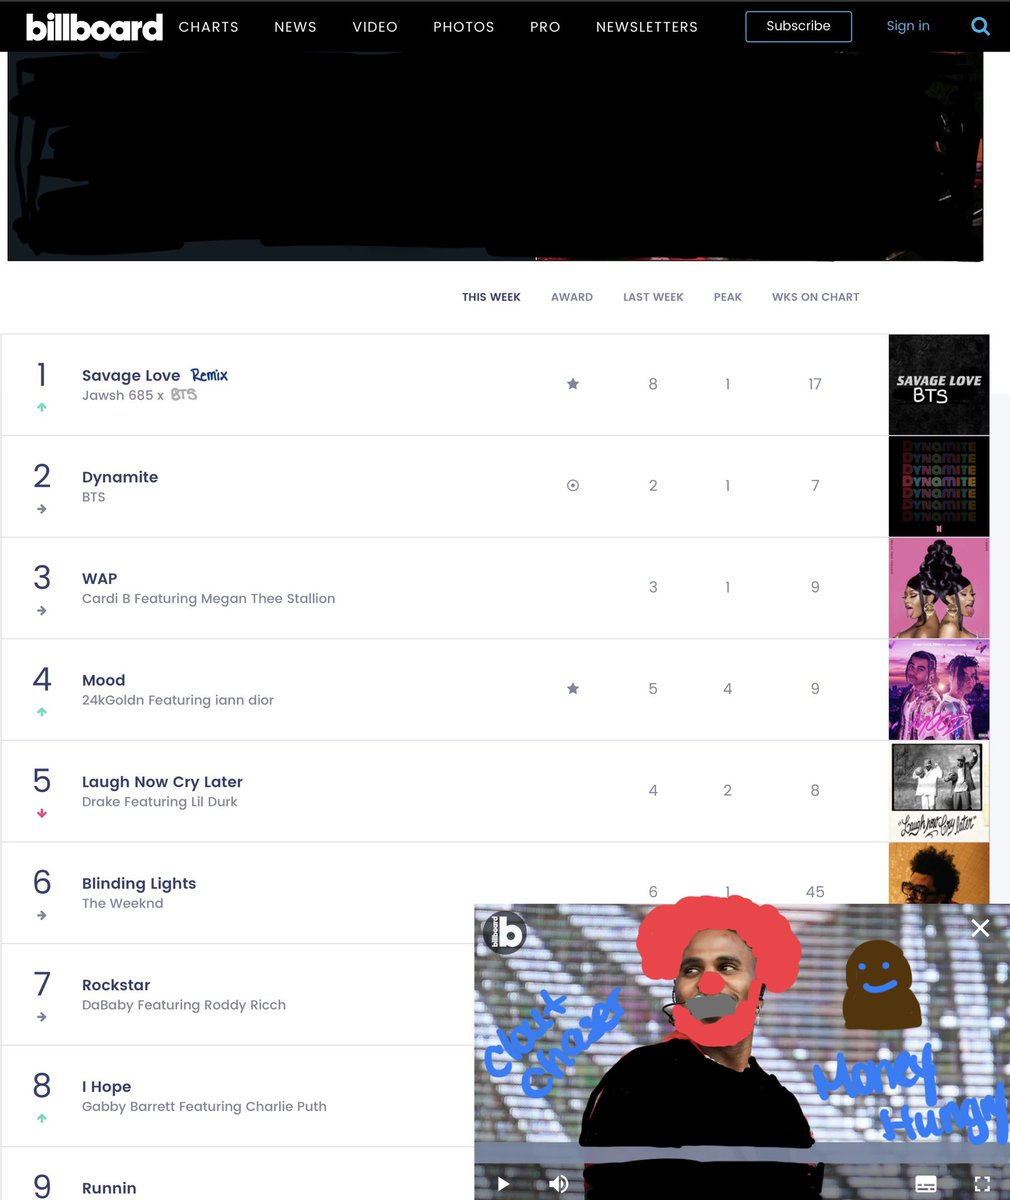 @billboard @billboardcharts u got some explaining to do that not the song that became #1 it was the remix version. You left out BTS so I fixed it 4 U.FIX IT or say y'all RASIST#BTS #JasonDeruloIsOverParty #jasonderuloiscancelled #BTSARMY #ARMYs #SavageLoveRemix #BTSWEEK #Hot100 https://t.co/s4tzbl7CbU